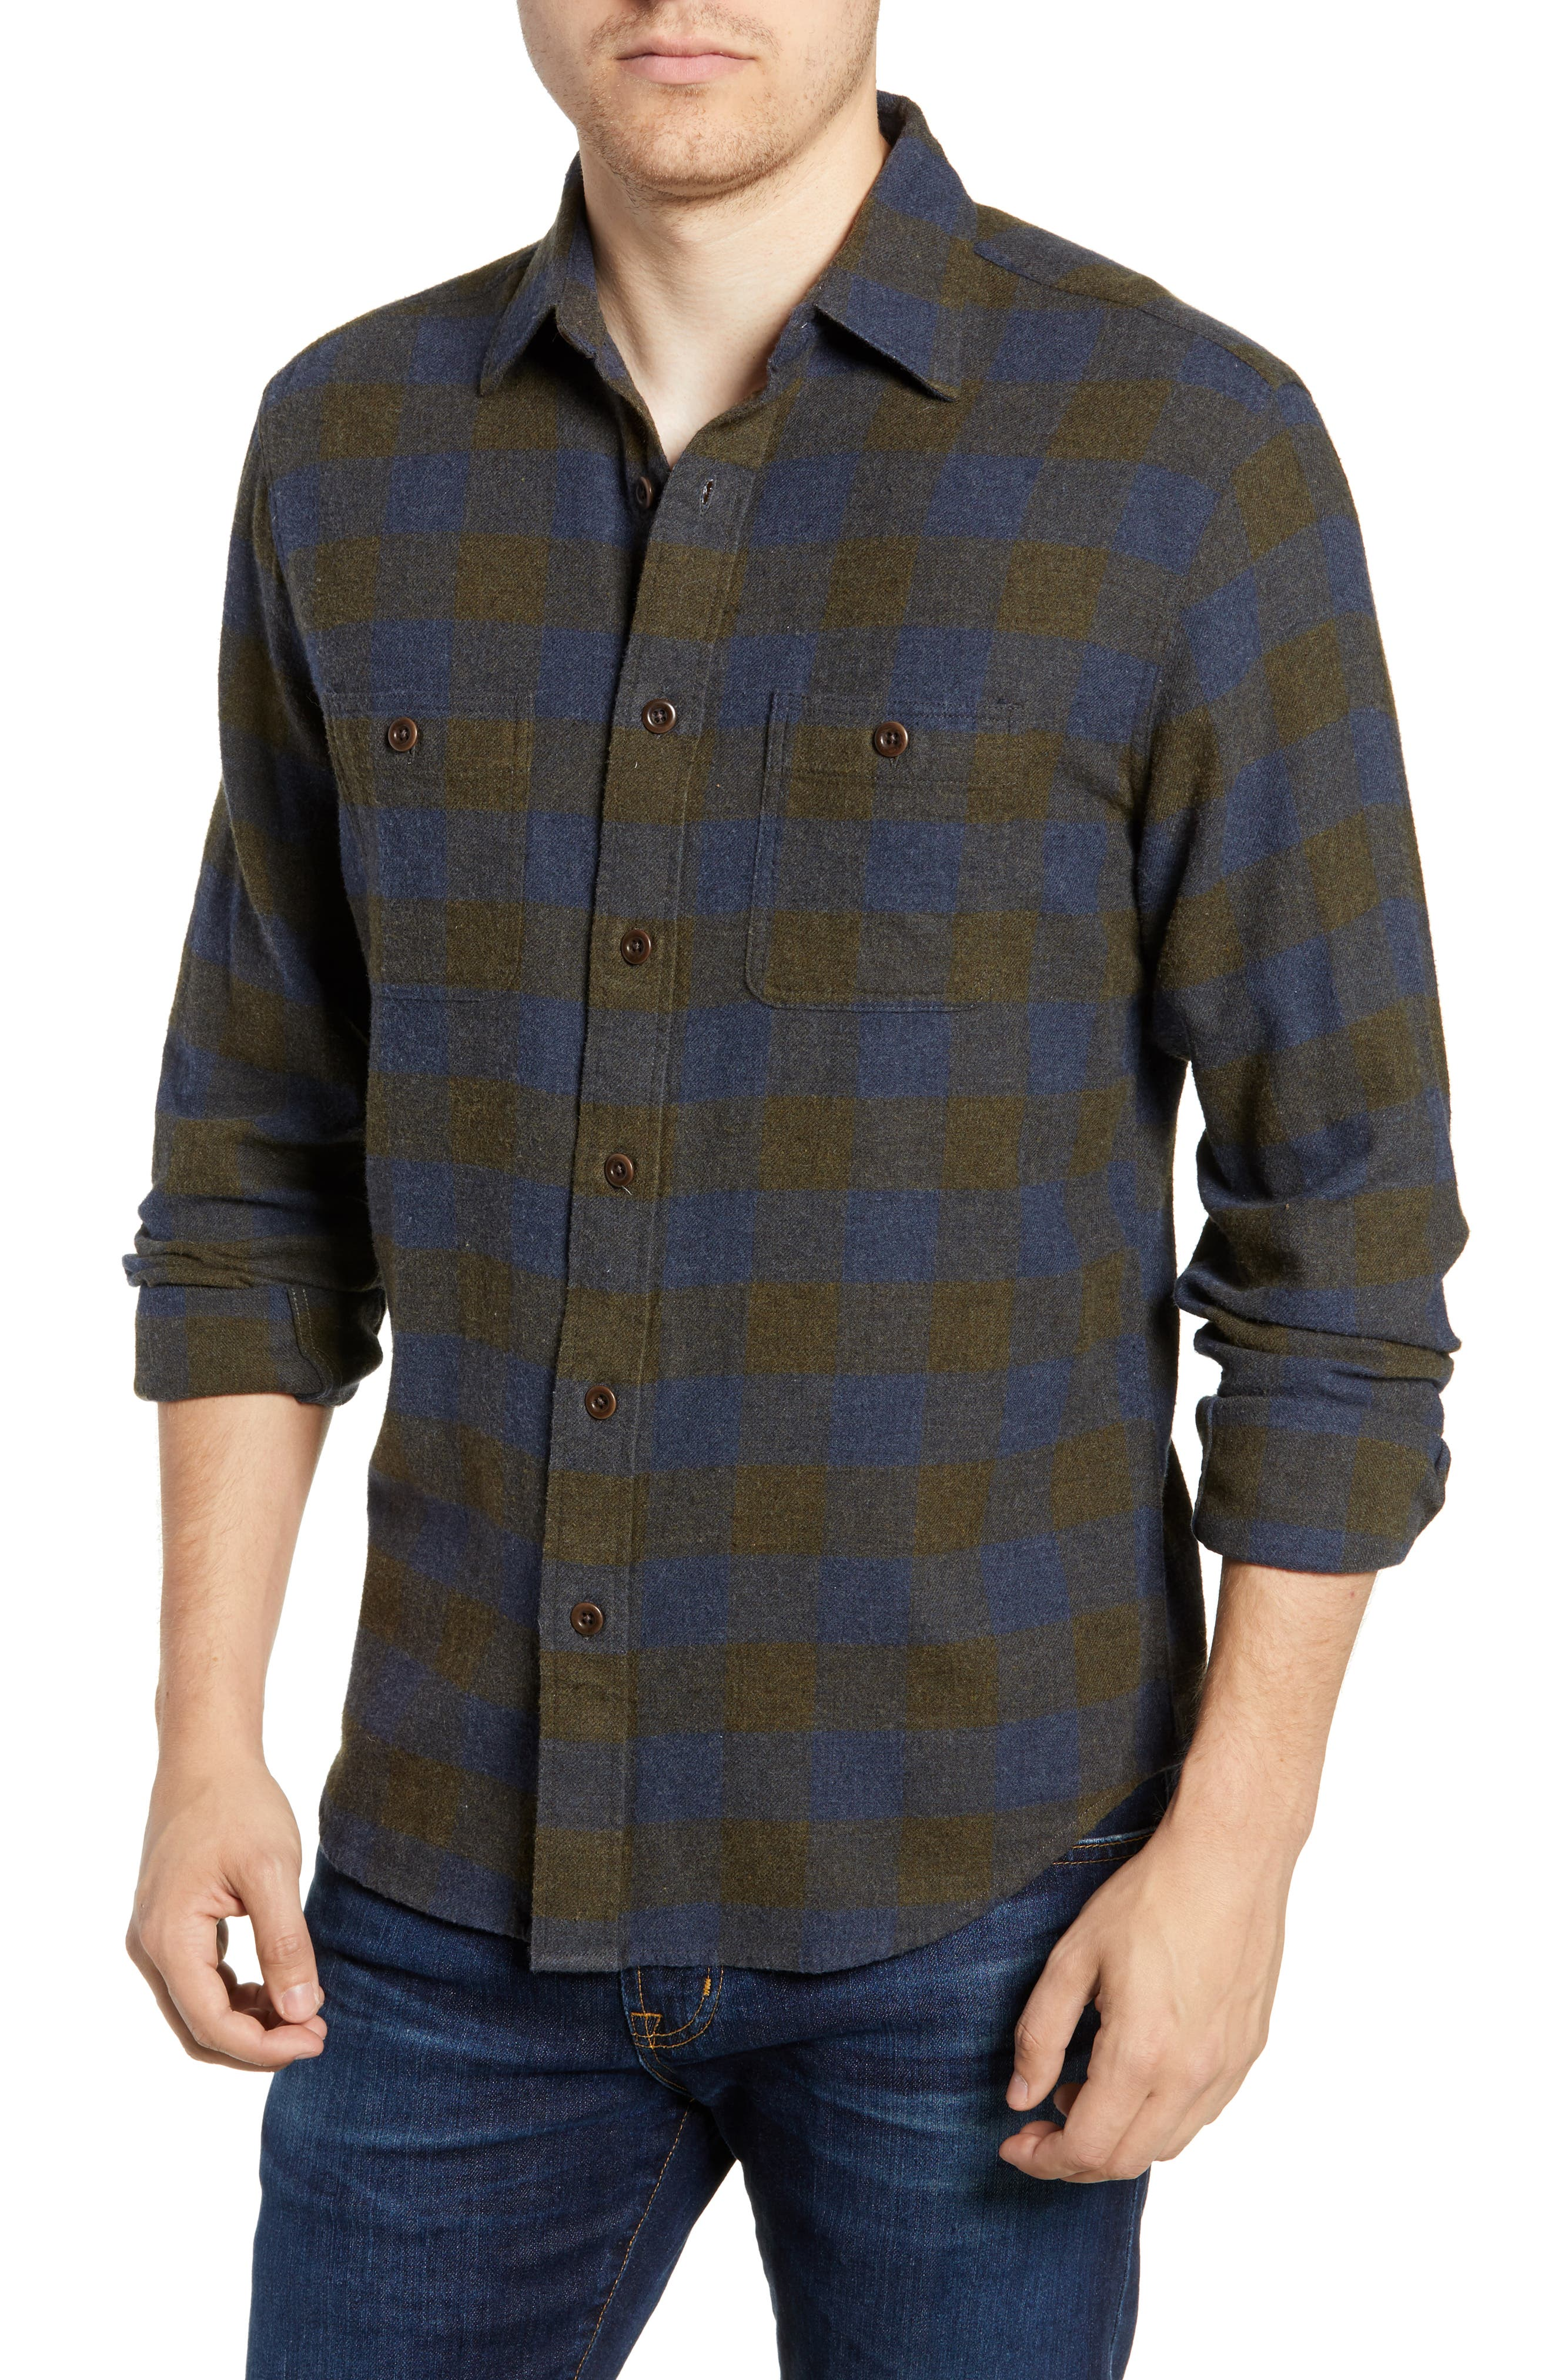 Seasons Check Flannel Shirt,                             Main thumbnail 1, color,                             NAVY OLIVE BUFFALO